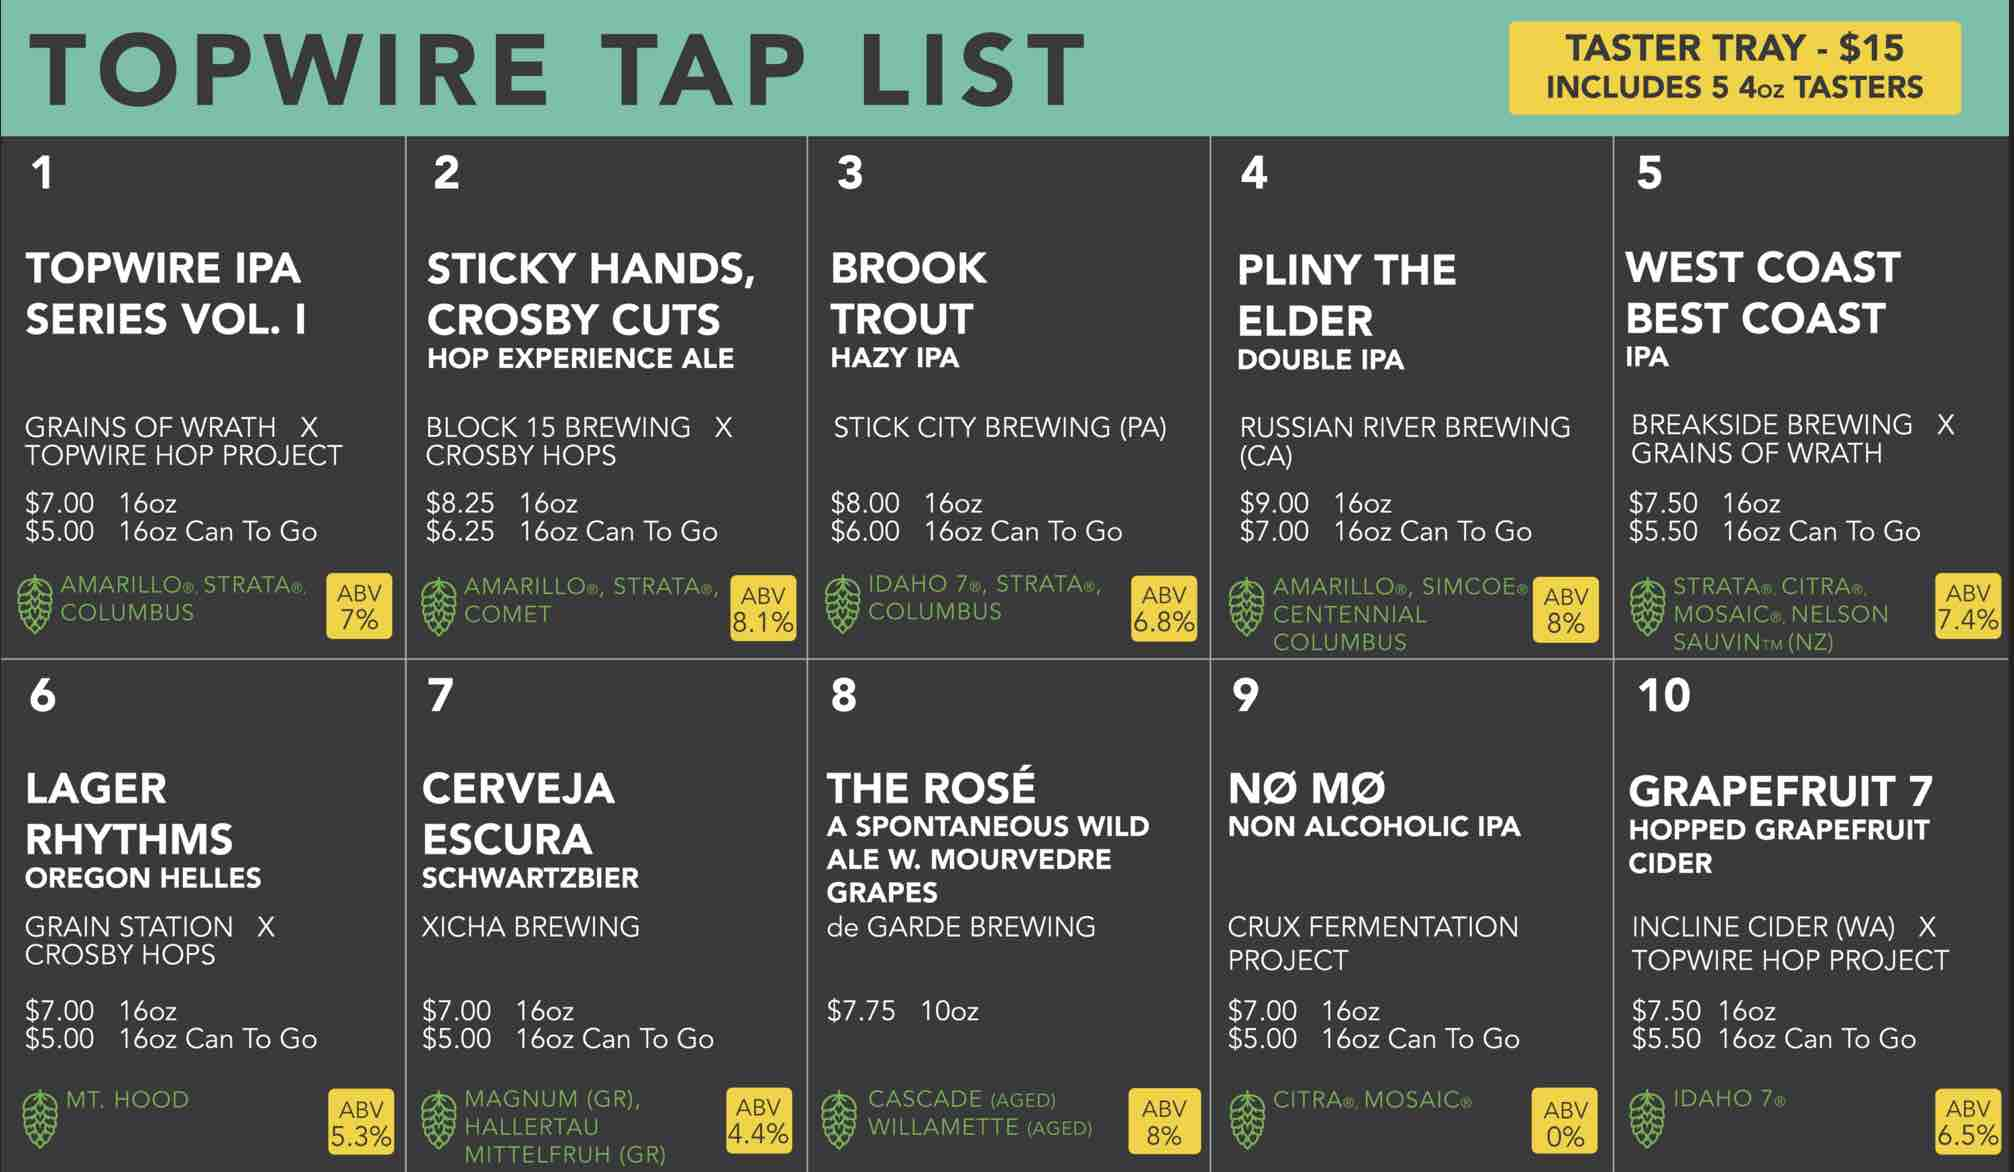 Opening day tap list at TopWire Hop Project.